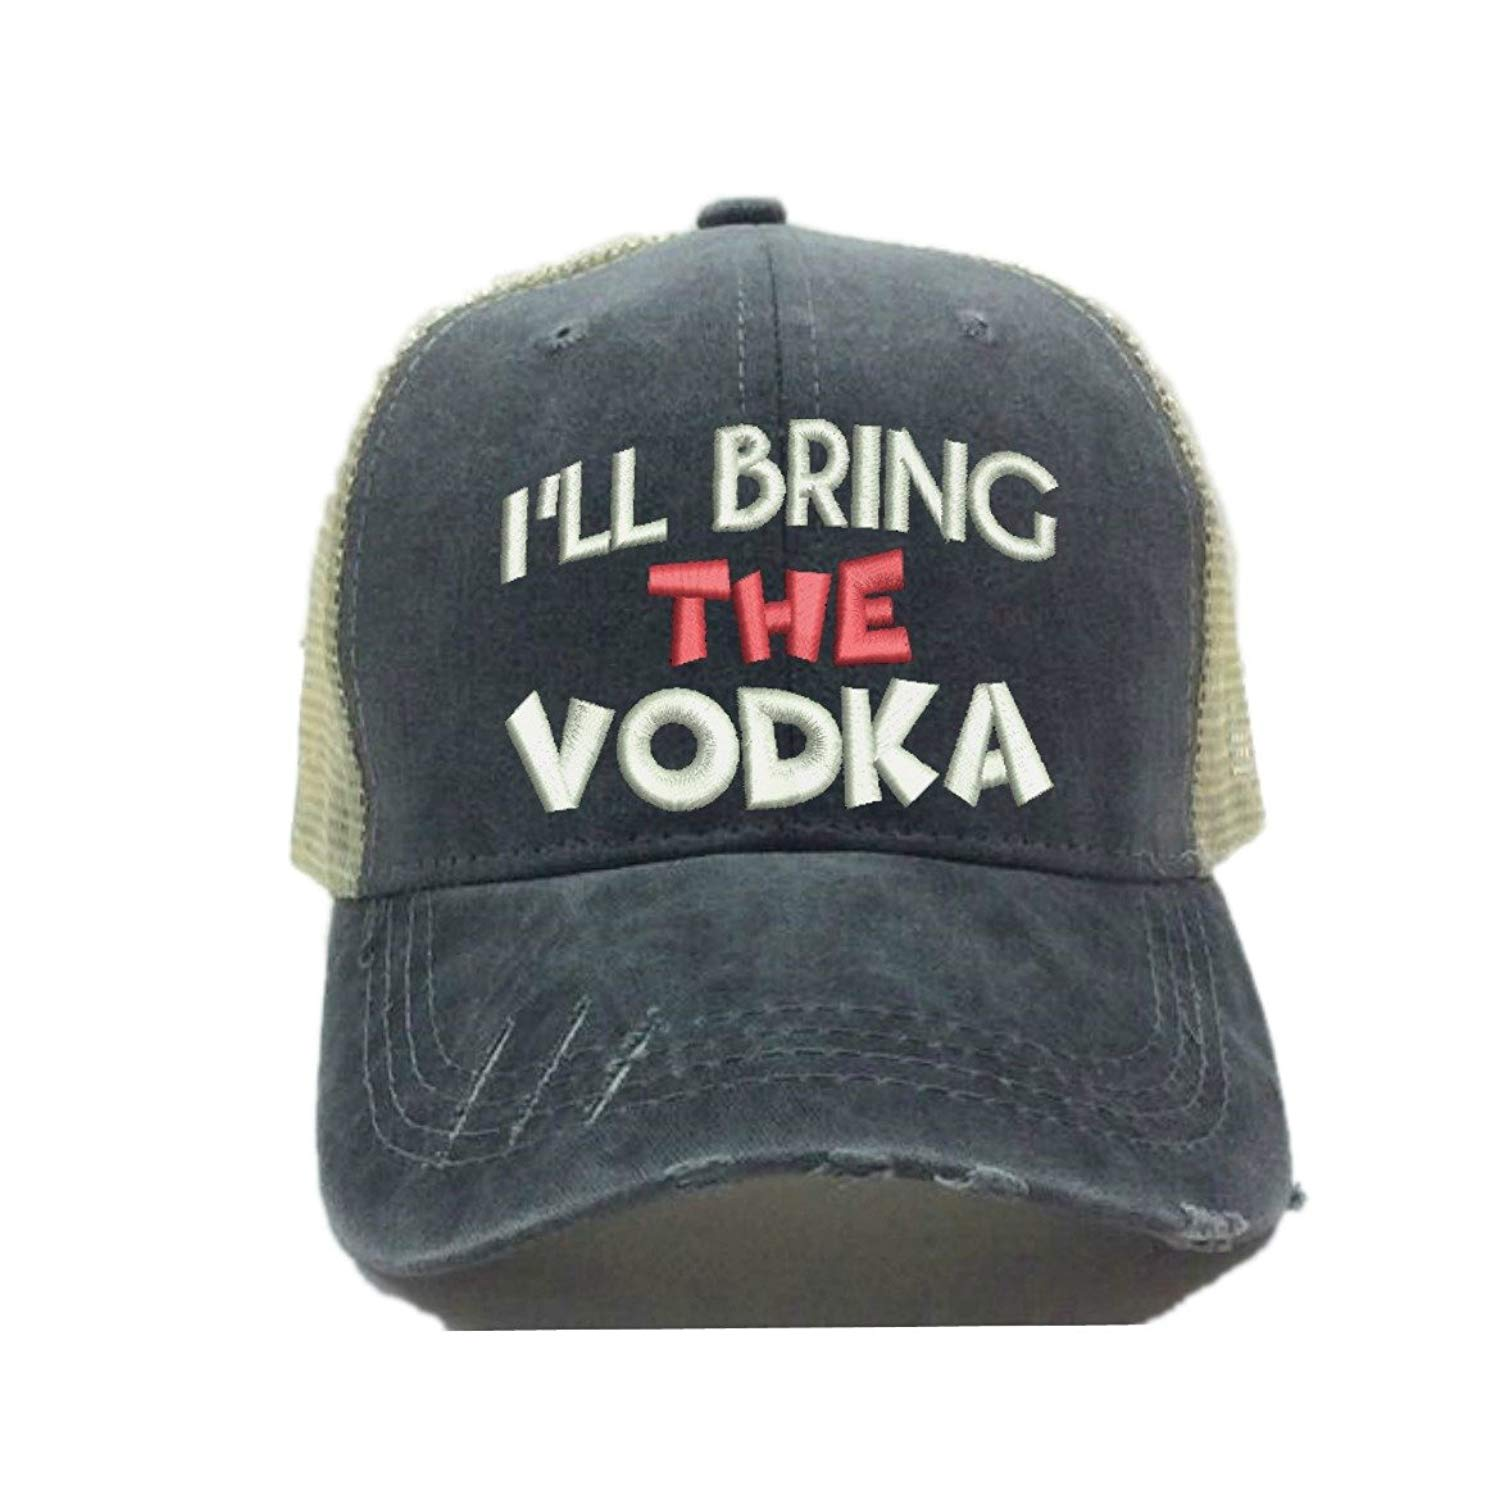 0ee402f4530 Get Quotations · Custom Trucker Hat More Alcohol Custom Distressed Trucker  Party Hat Baseball Cap